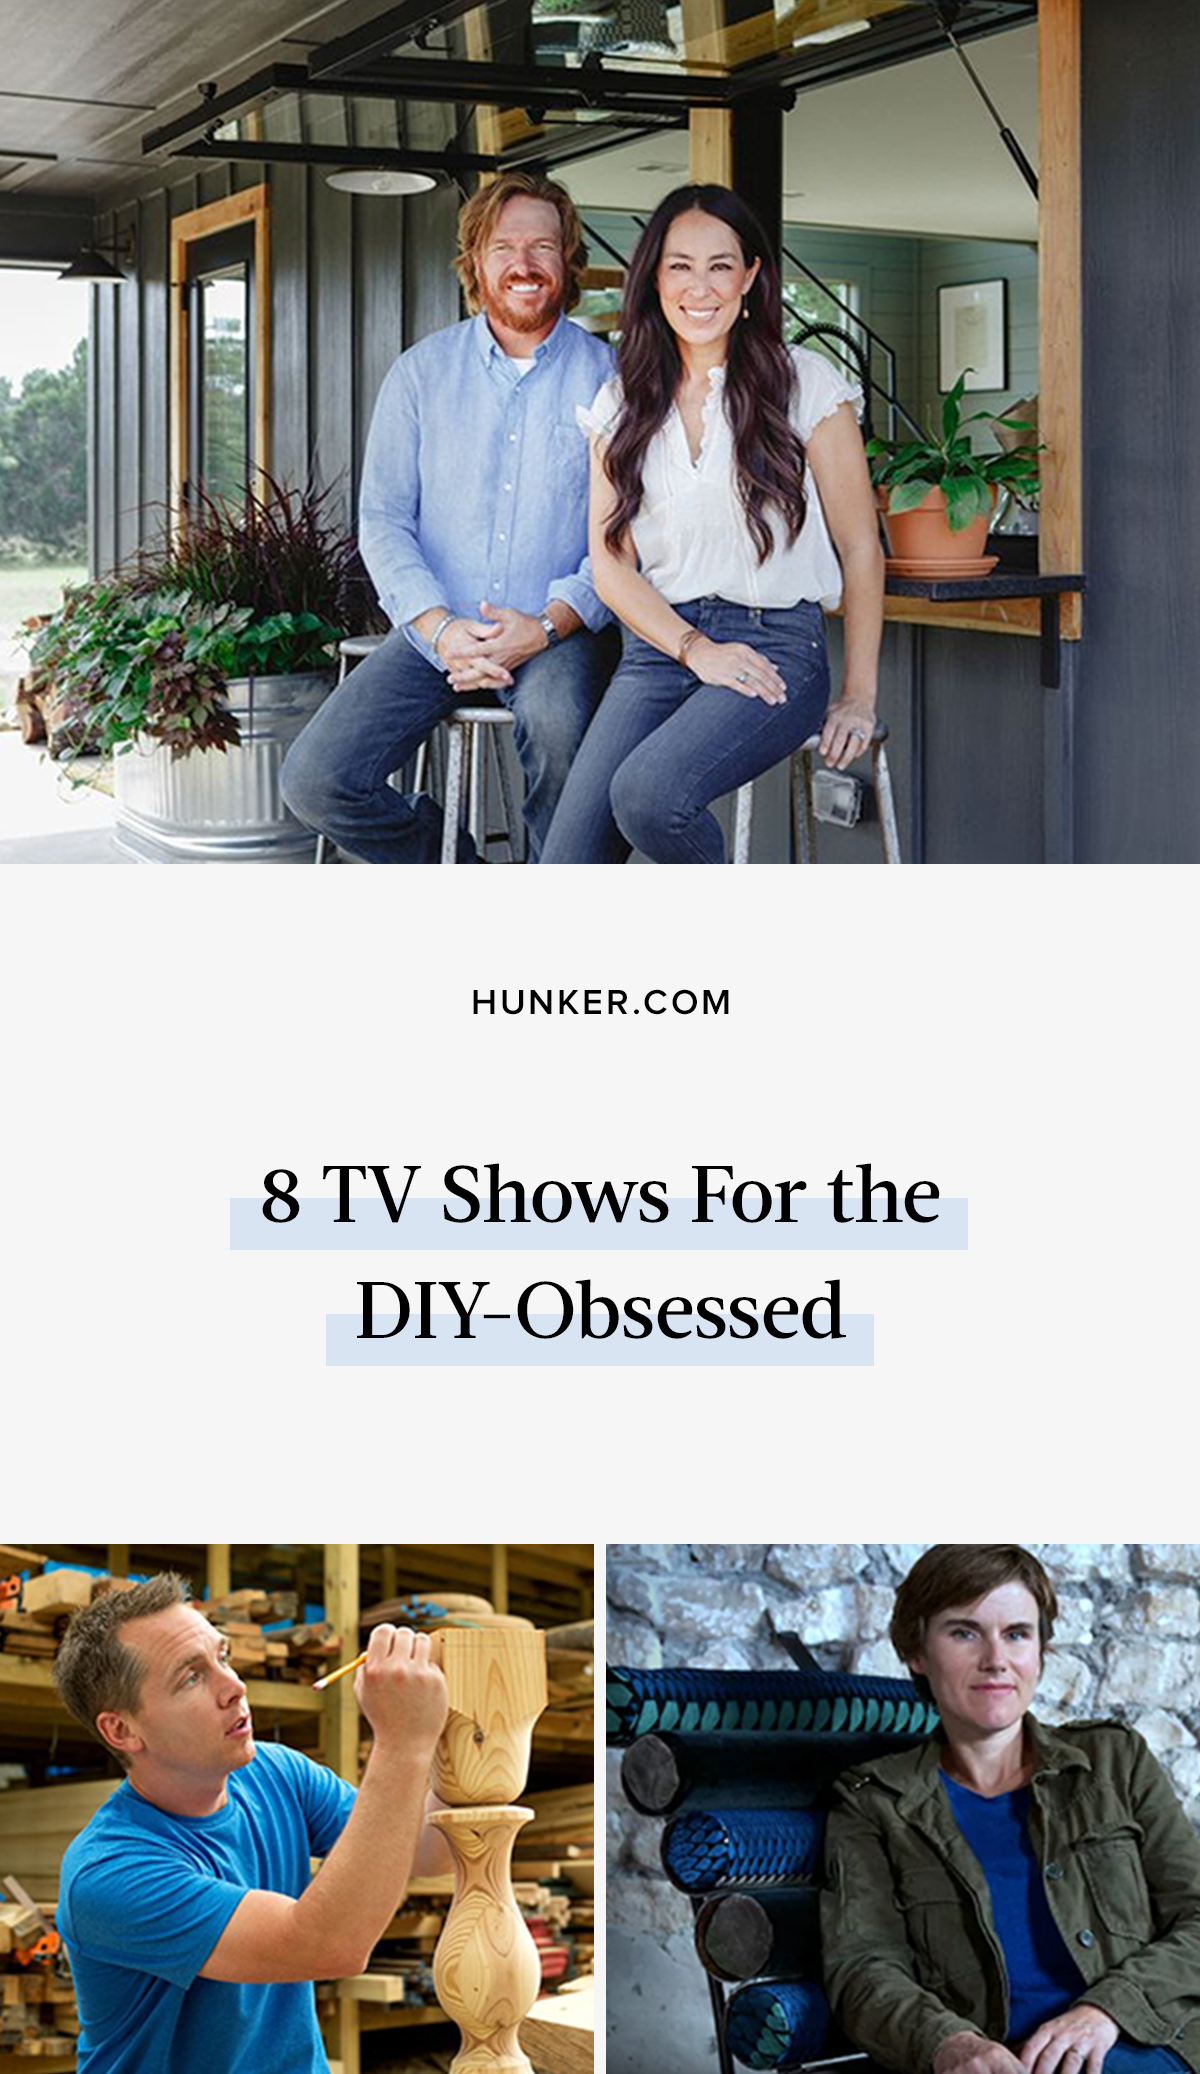 8 TV Shows to Watch If You're DIY-Obsessed | Great ...